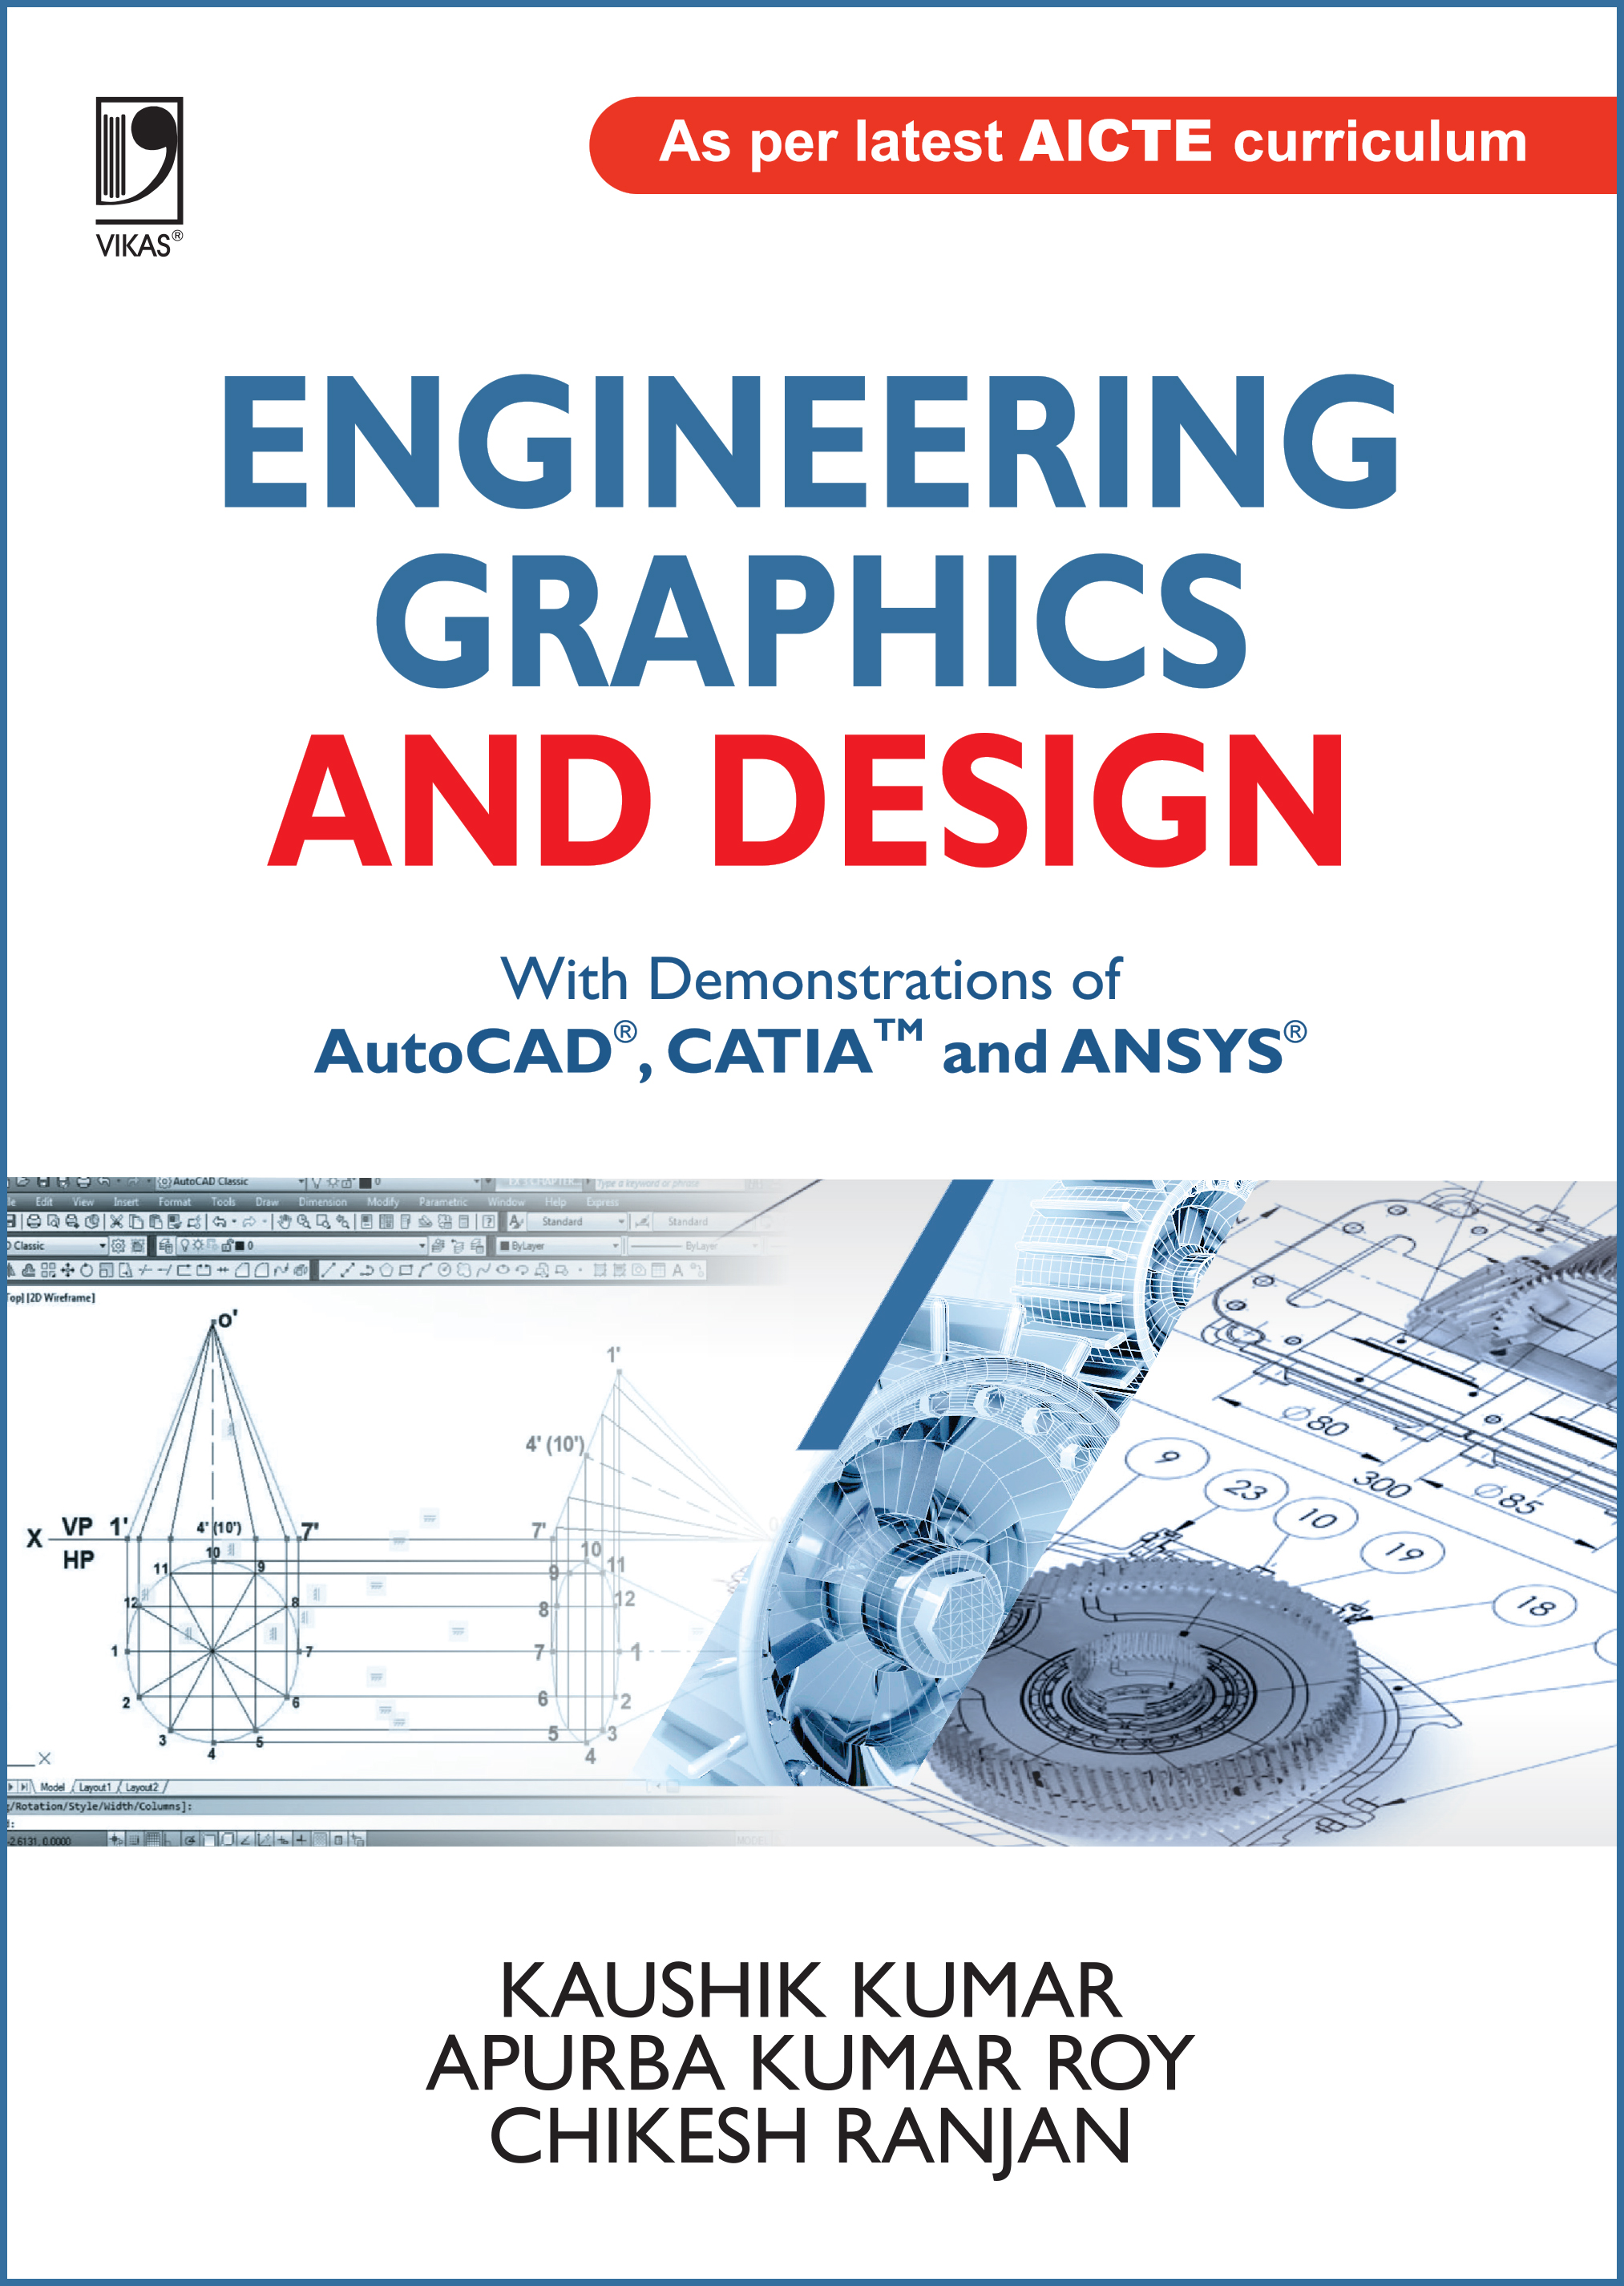 Engineering Graphics and Design: With Demonstrations of AutoCAD, CATIA & ANSYS by  Kaushik Kumar